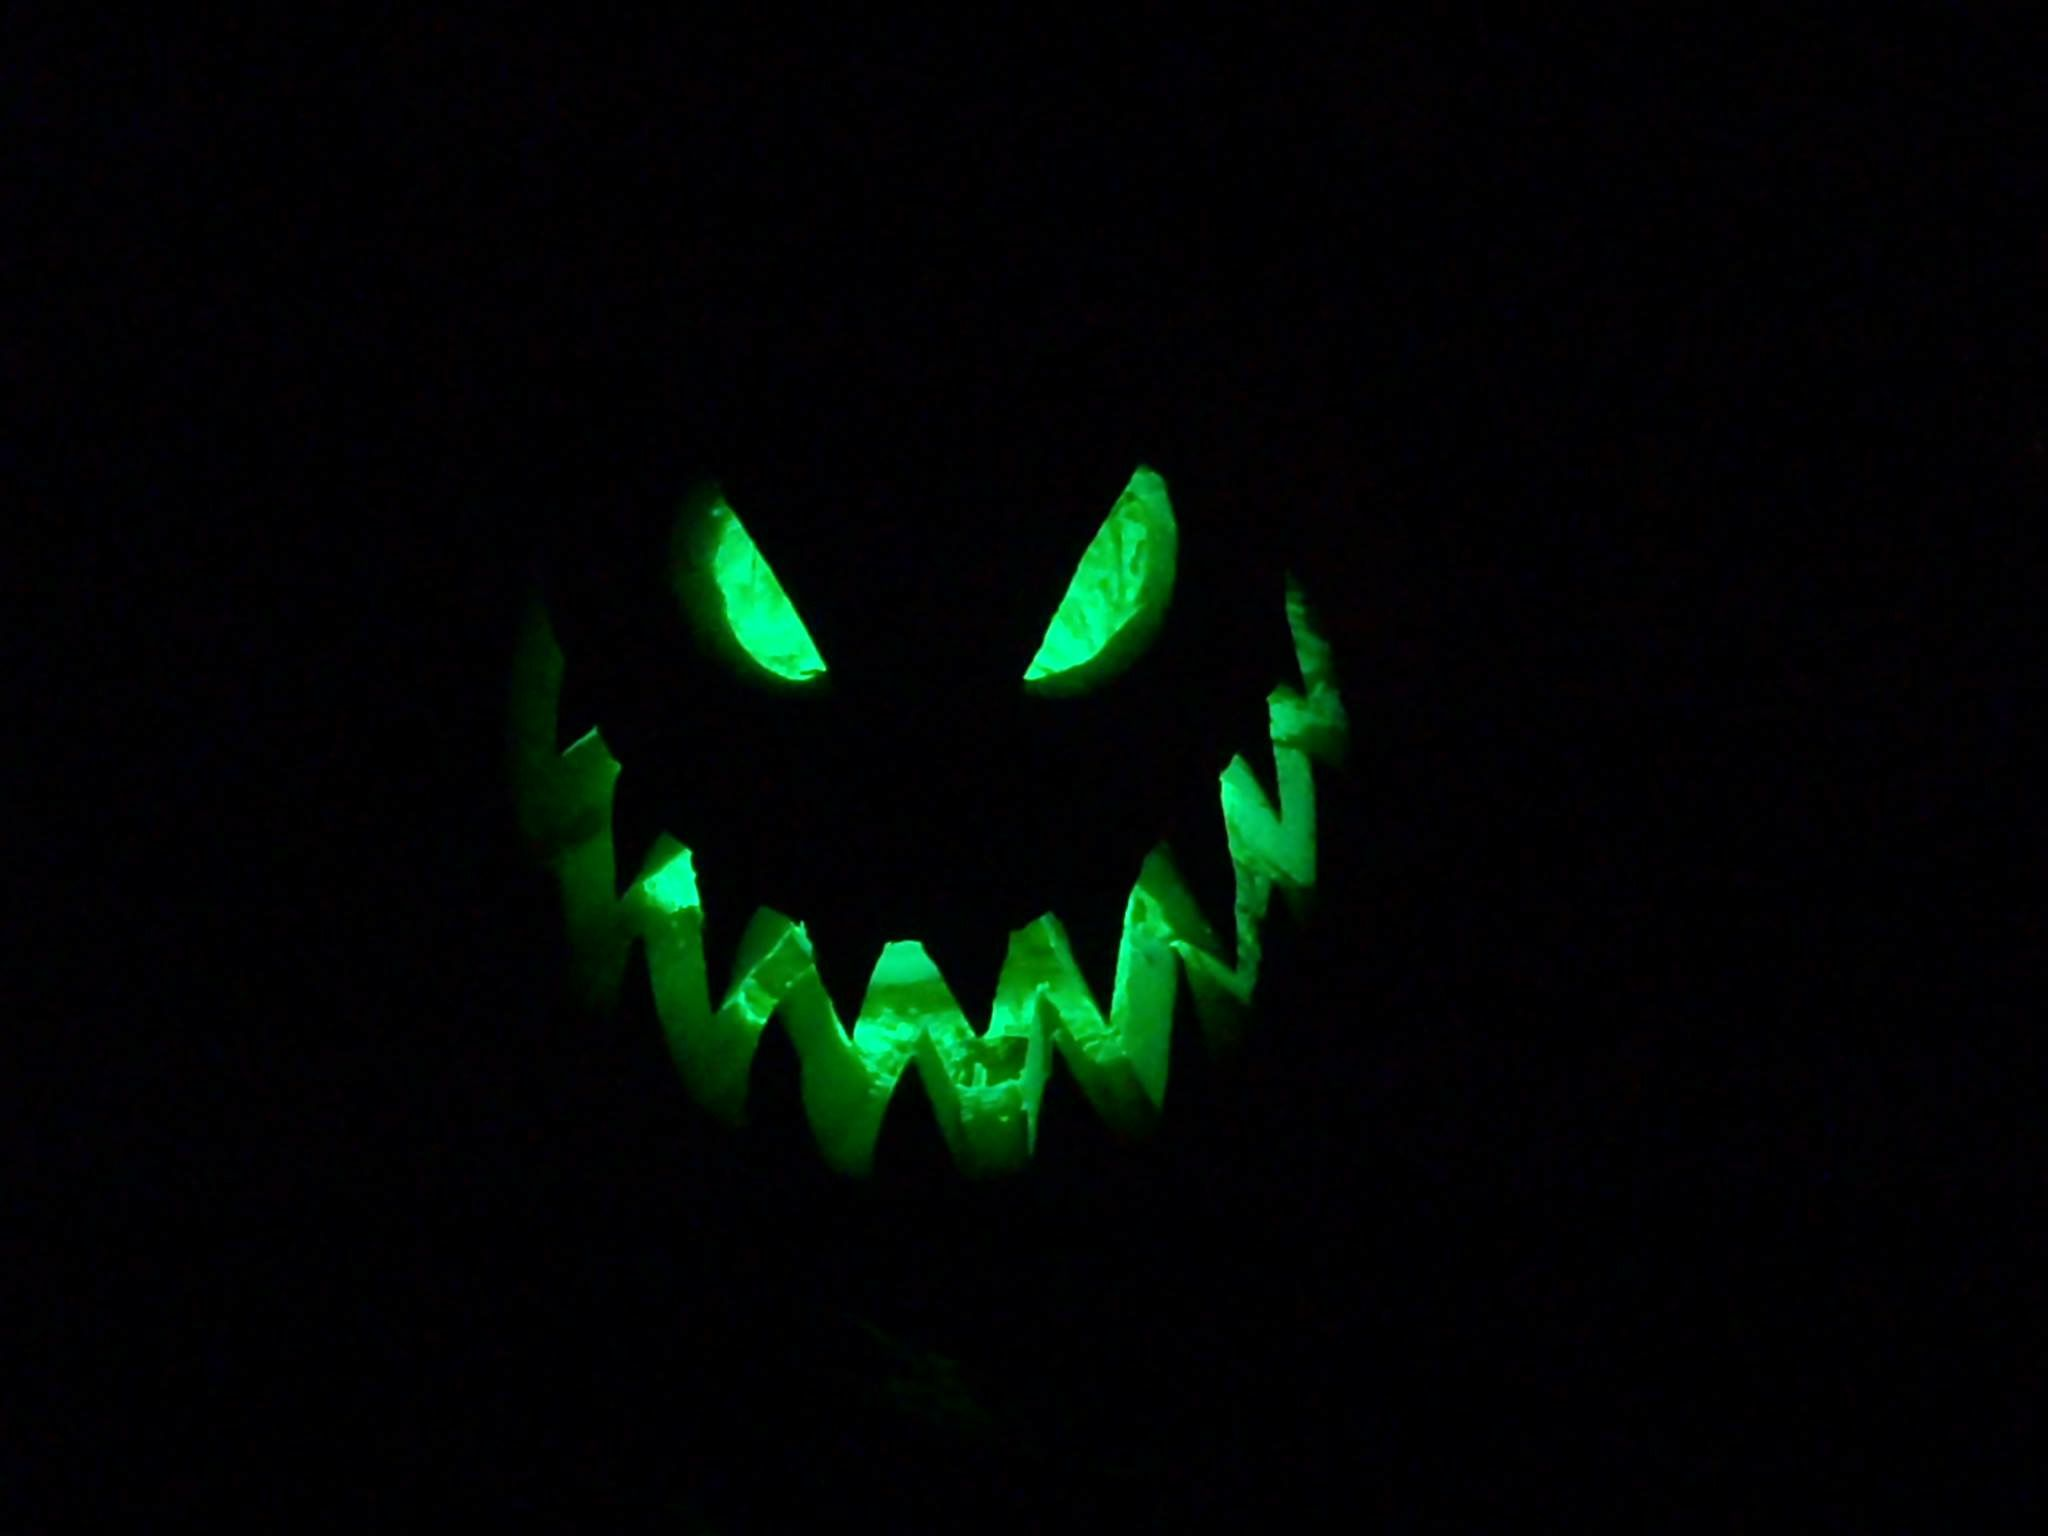 How to Make a Green Fire Halloween Jack-o-Lantern